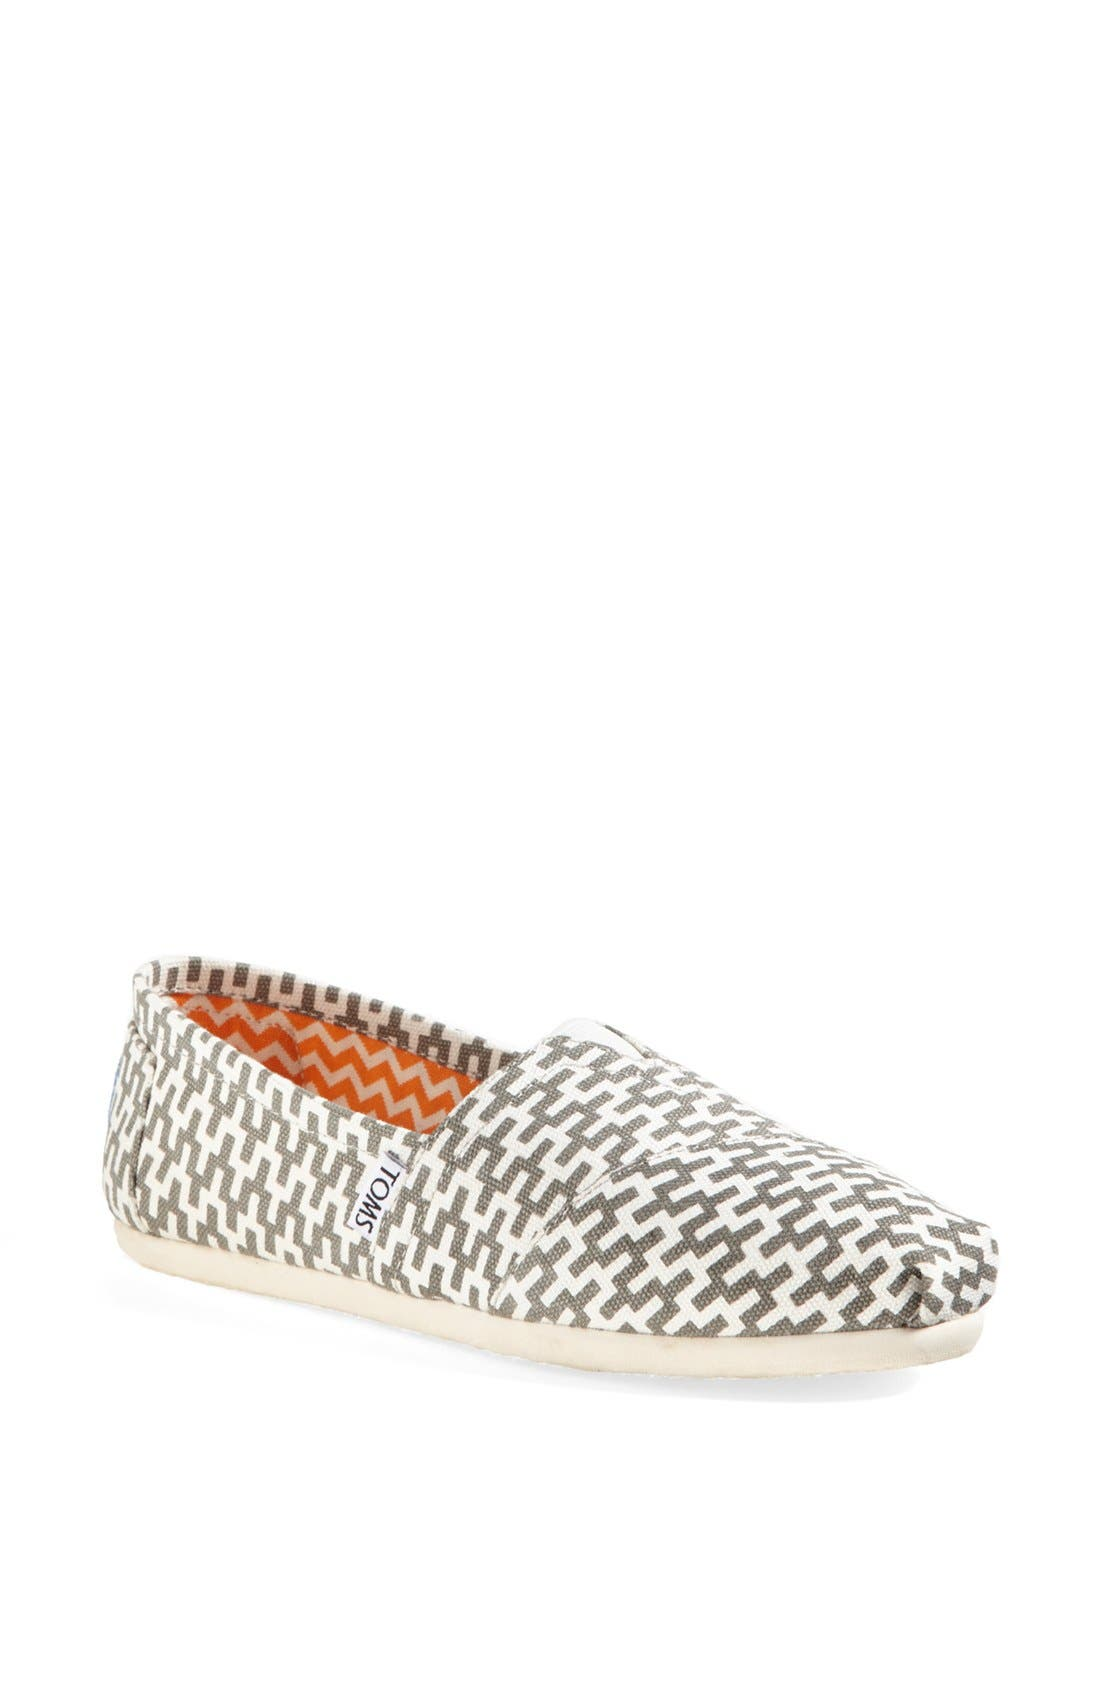 TOMS 'Classic - Jonathan Adler' Slip-On, Main, color, 020